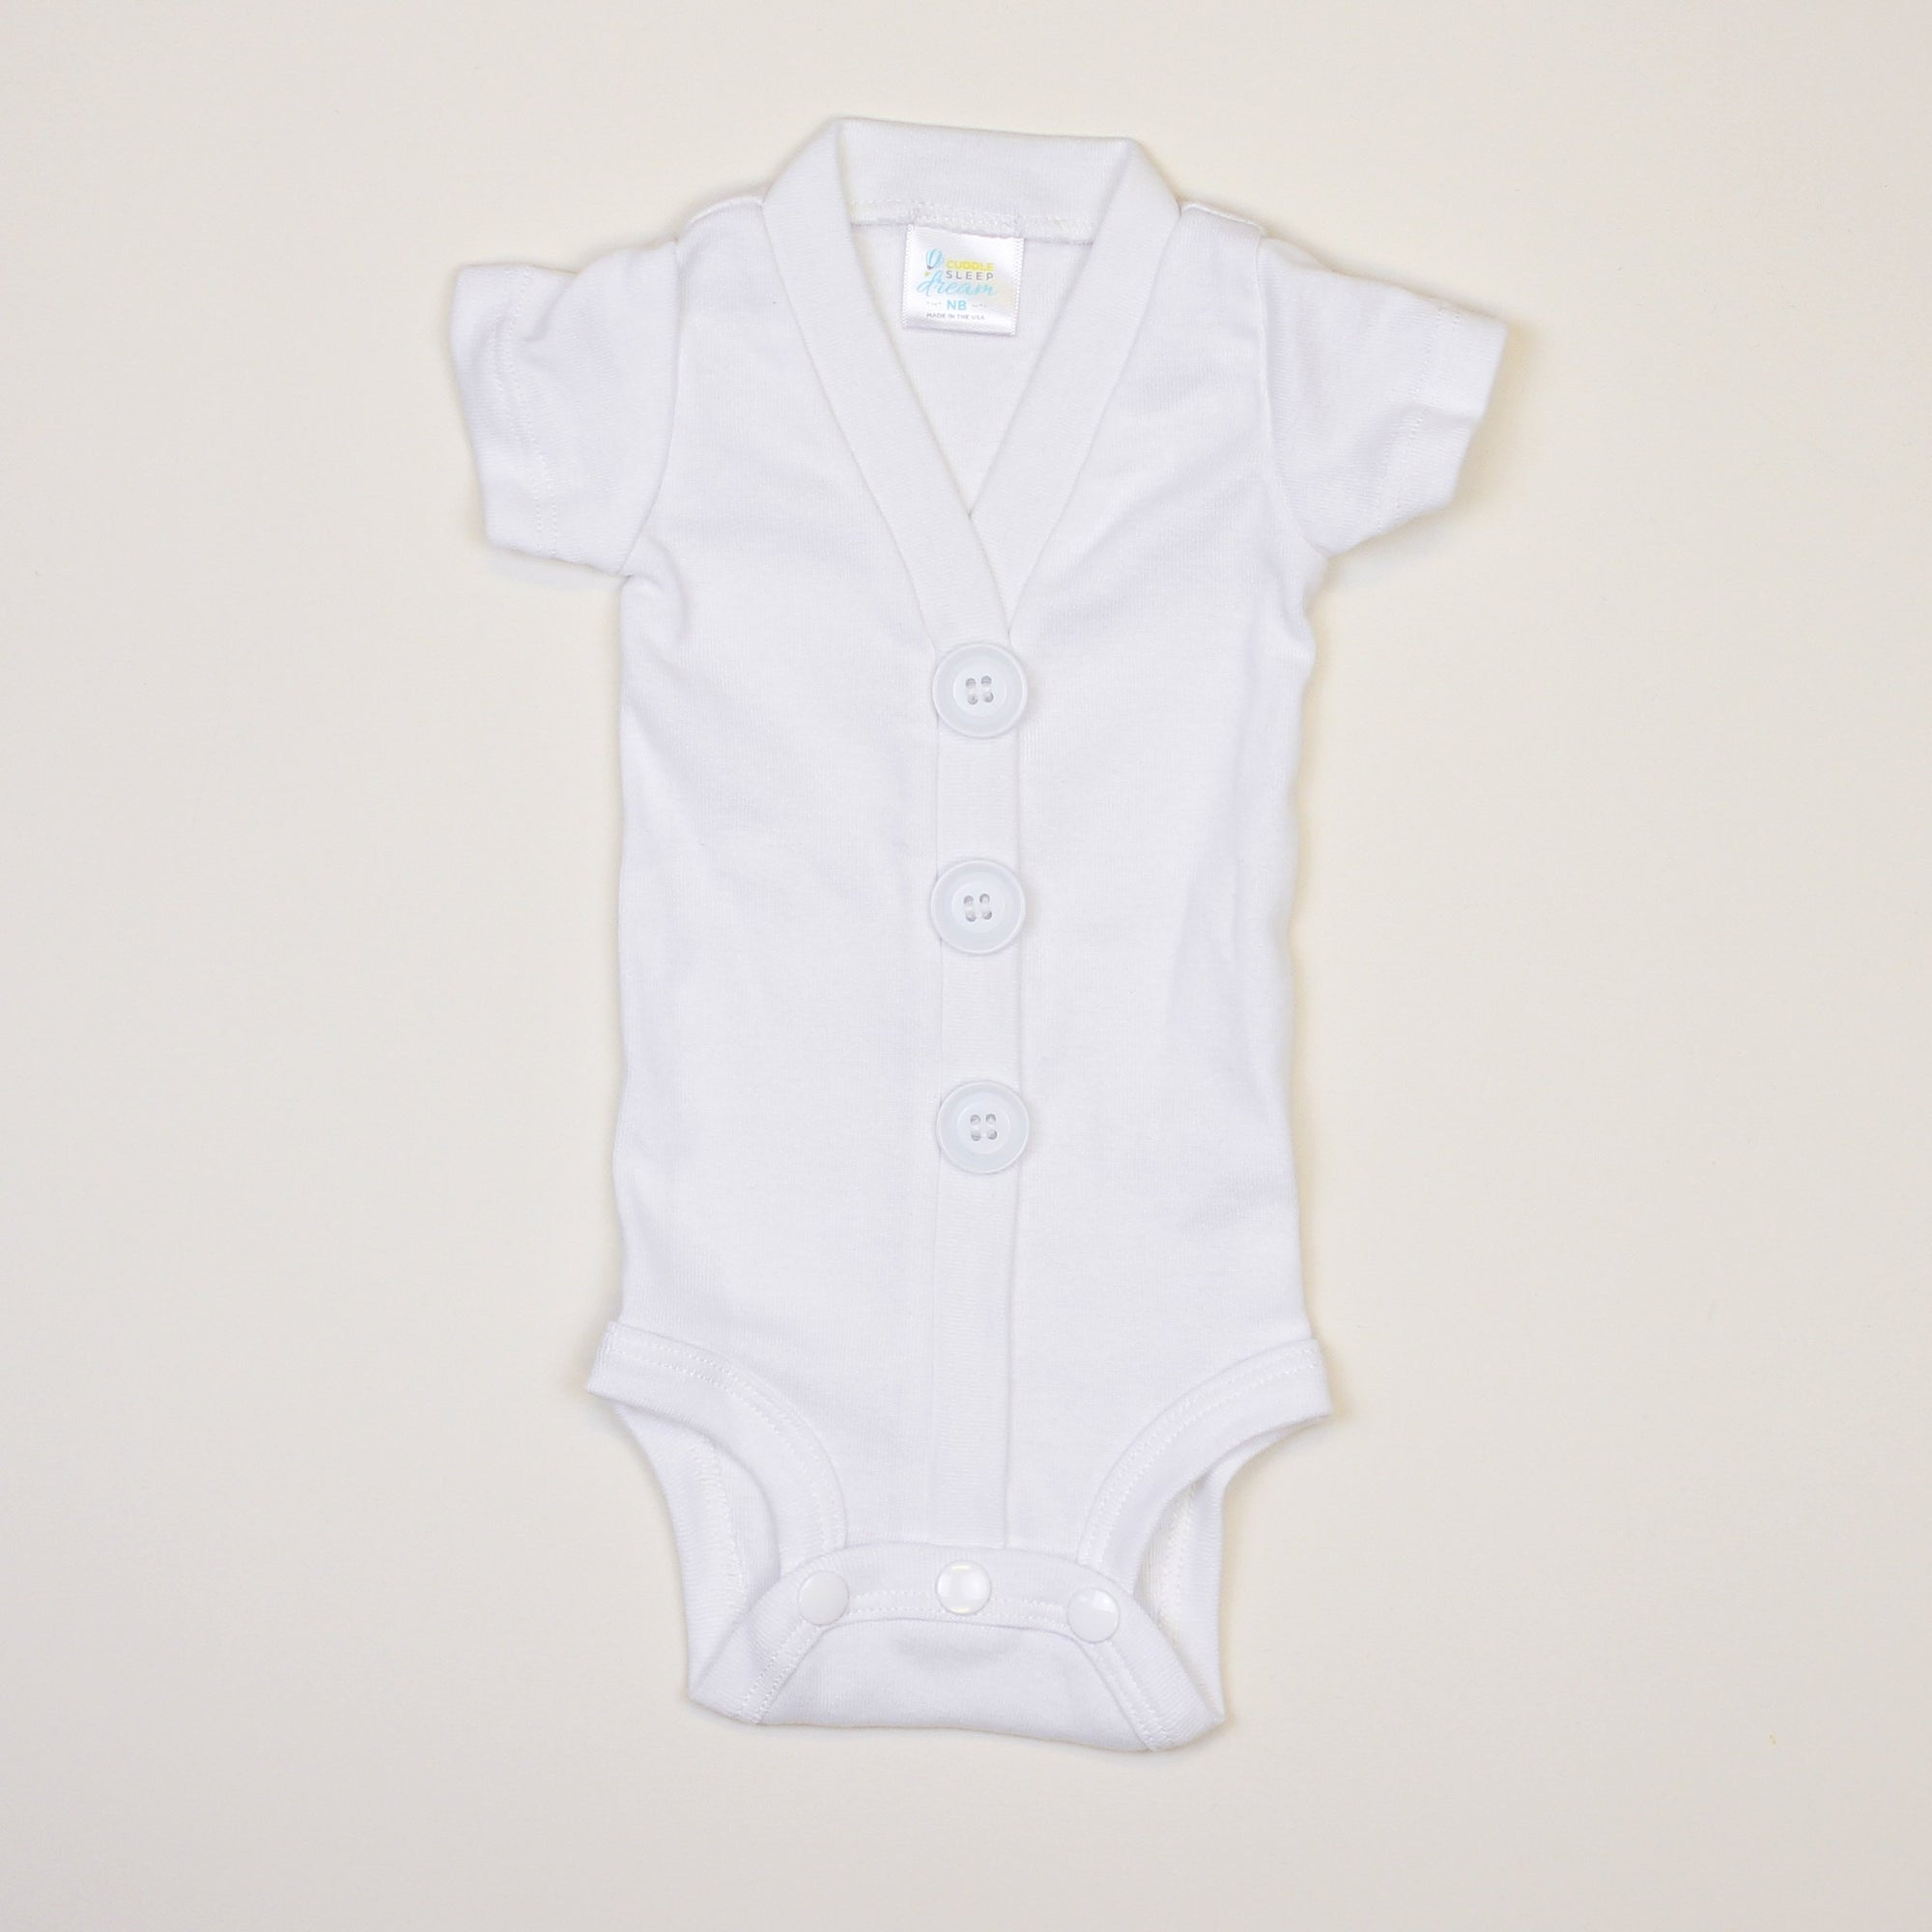 Cuddle Sleep Dream White Cardisuit | Short Sleeve